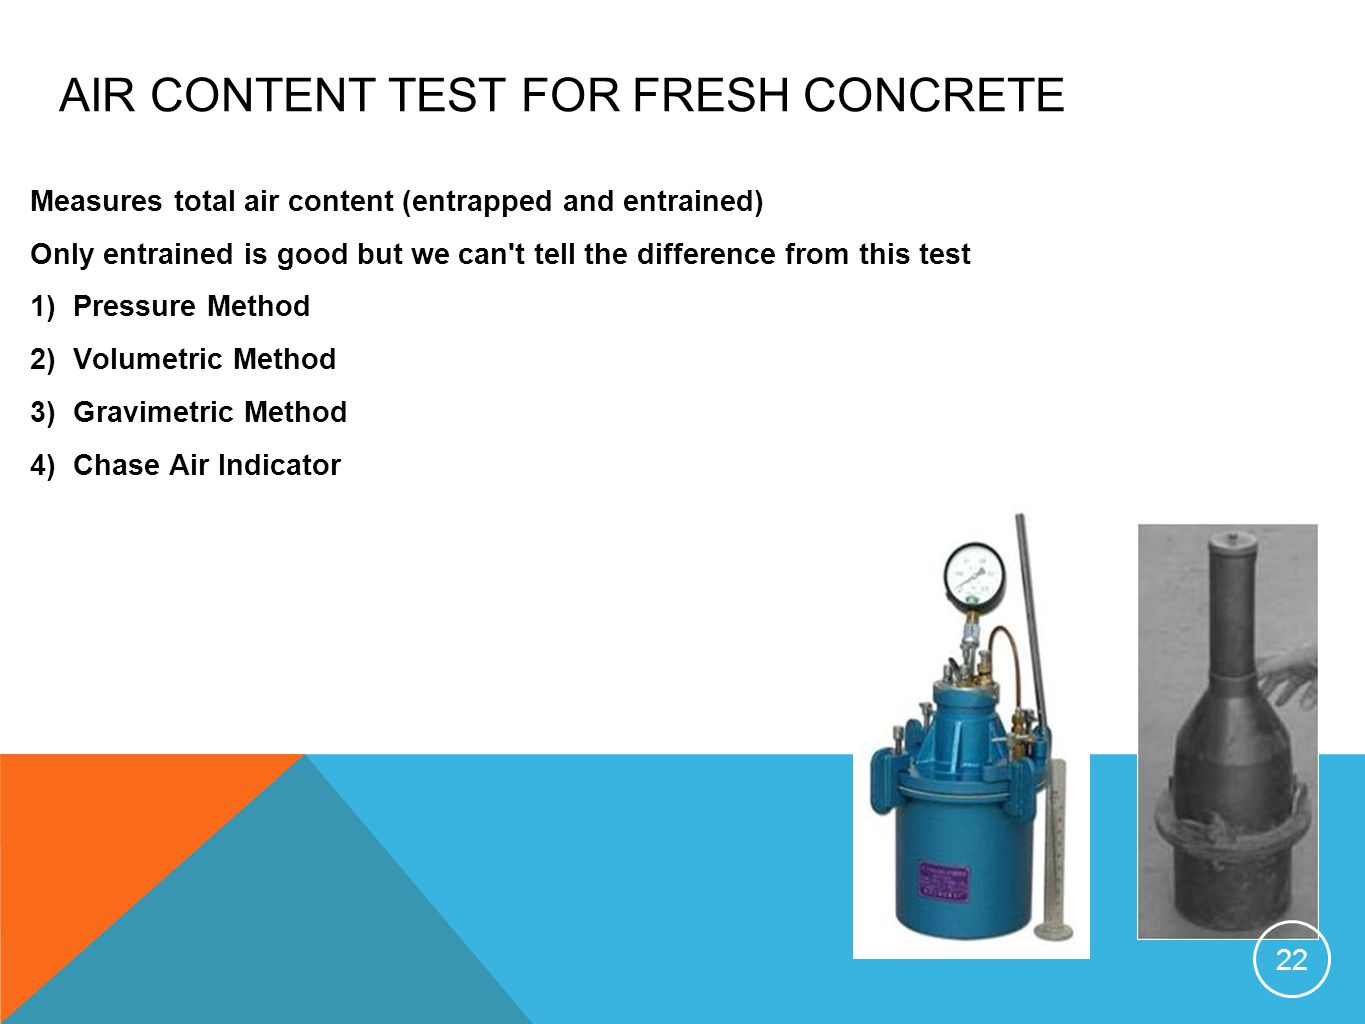 AIR CONTENT TEST FOR FRESH CONCRETE Measures total air content (entrapped and entrained) Only entrained is good but we can t tell the difference from this test 1)Pressure Method 2)Volumetric Method 3)Gravimetric Method 4)Chase Air Indicator 22